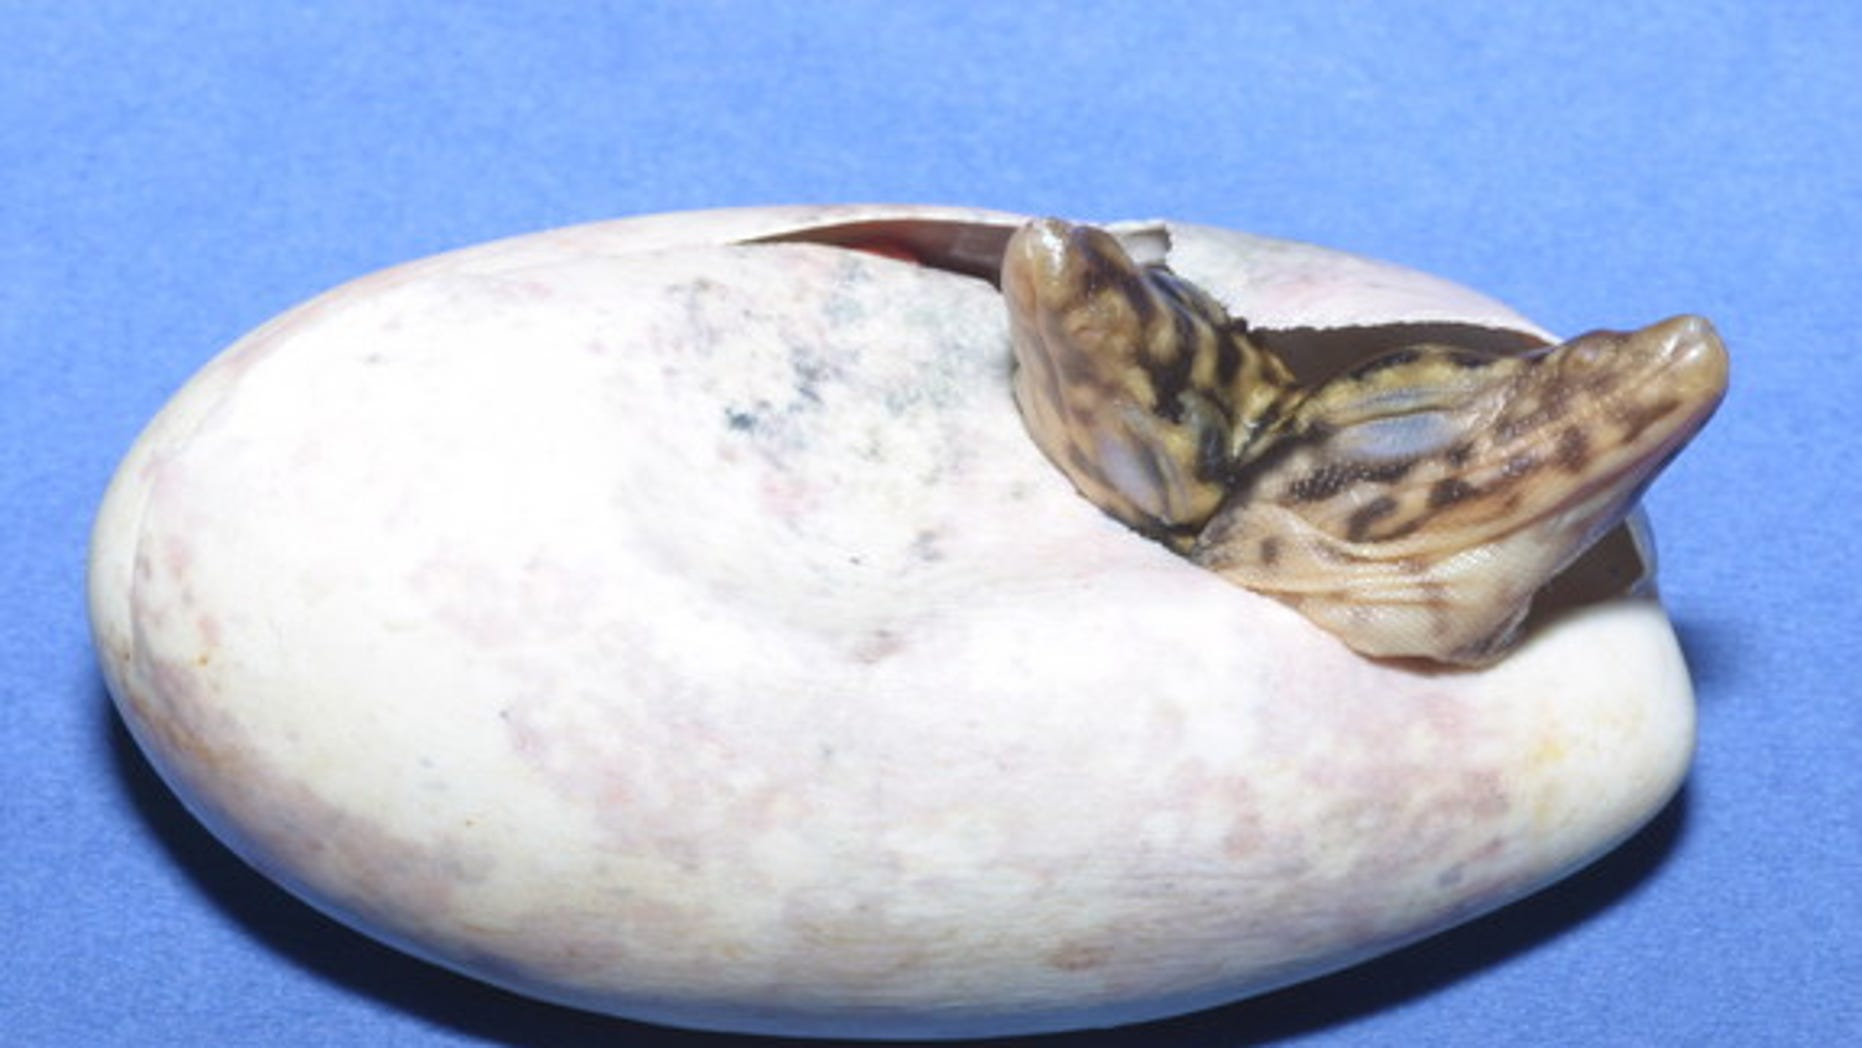 The conjoined lizard twins, still inside their egg.